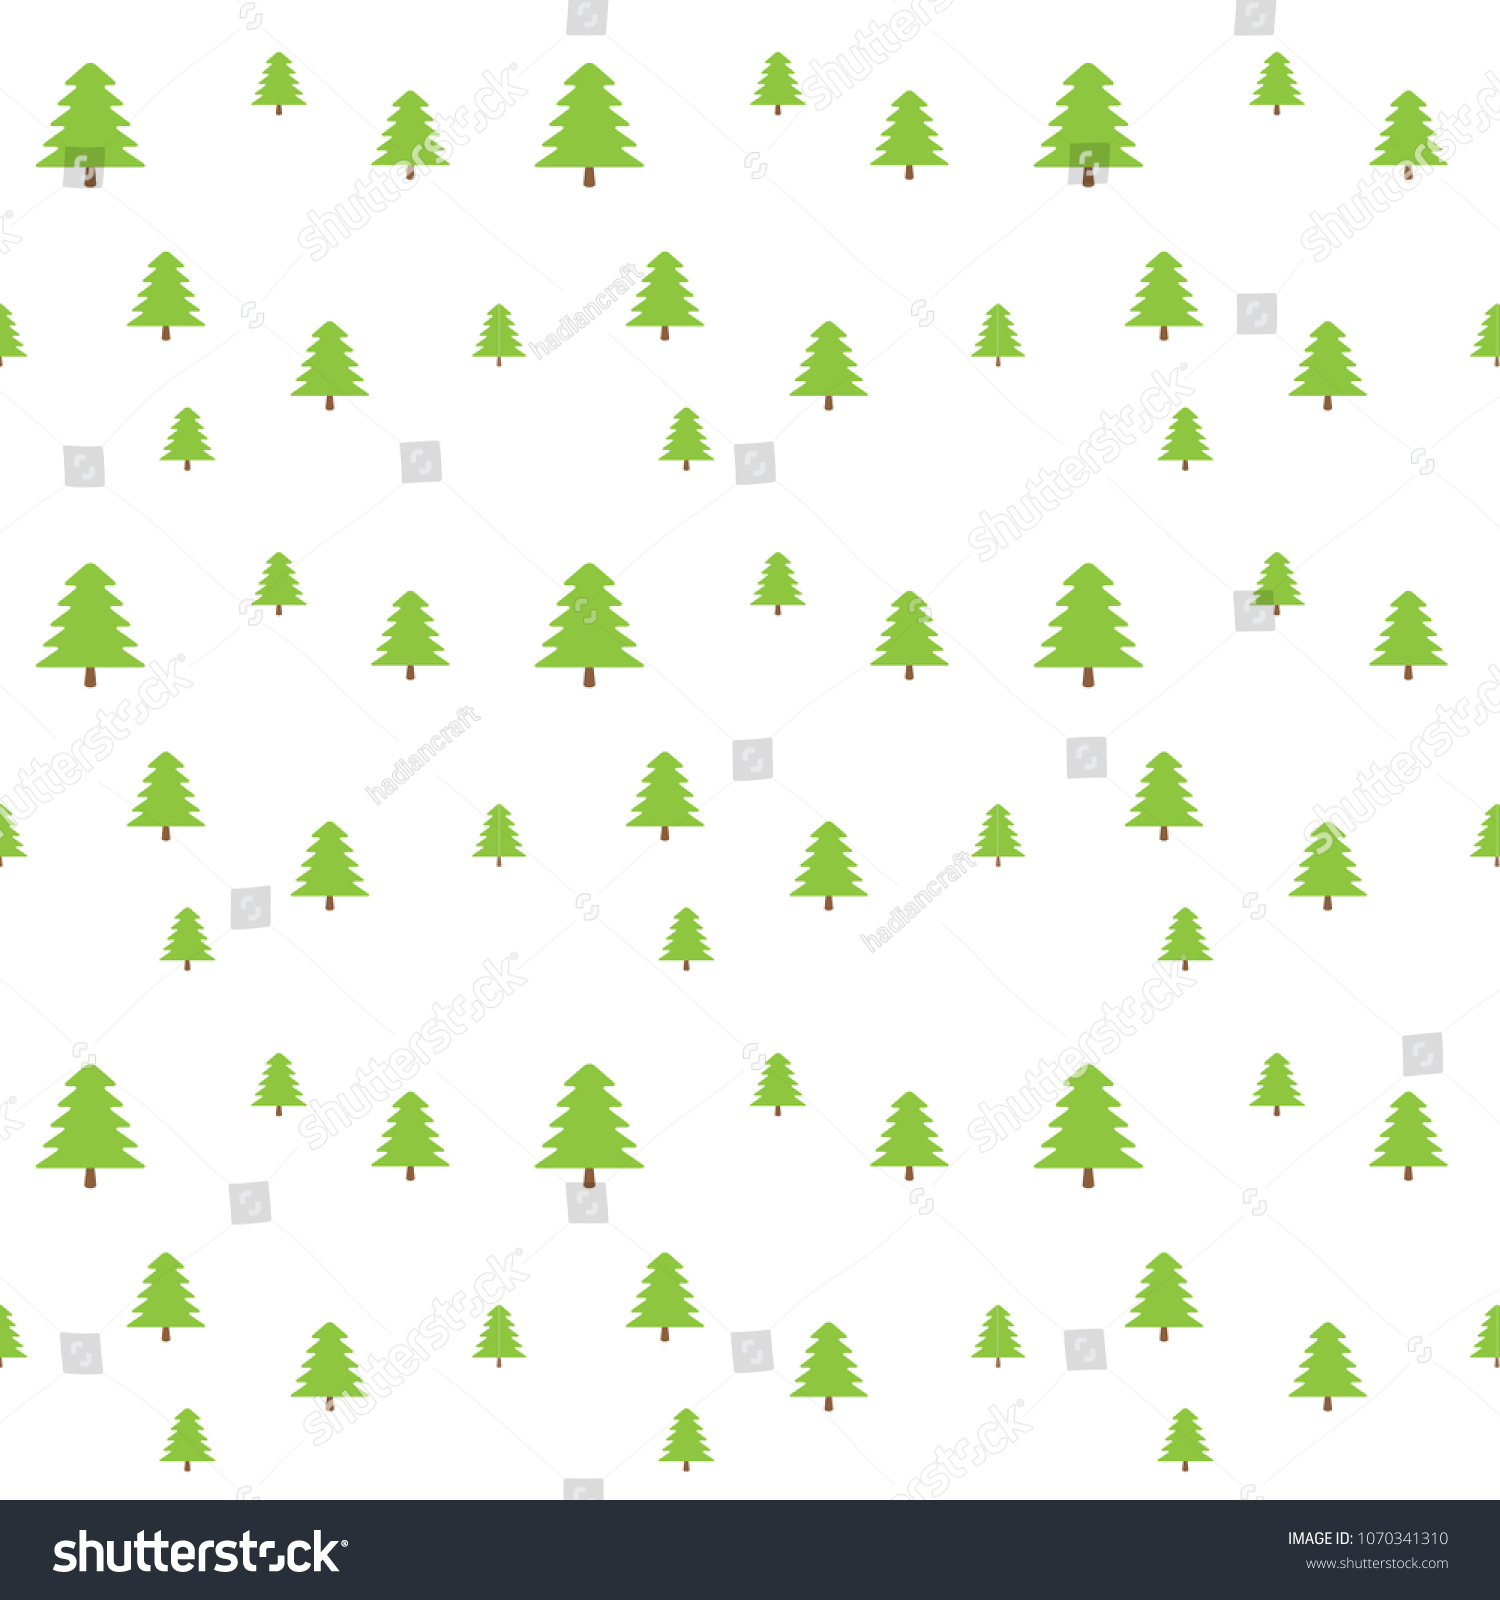 Simple Christmas Backgrounds Magdalene Project Org